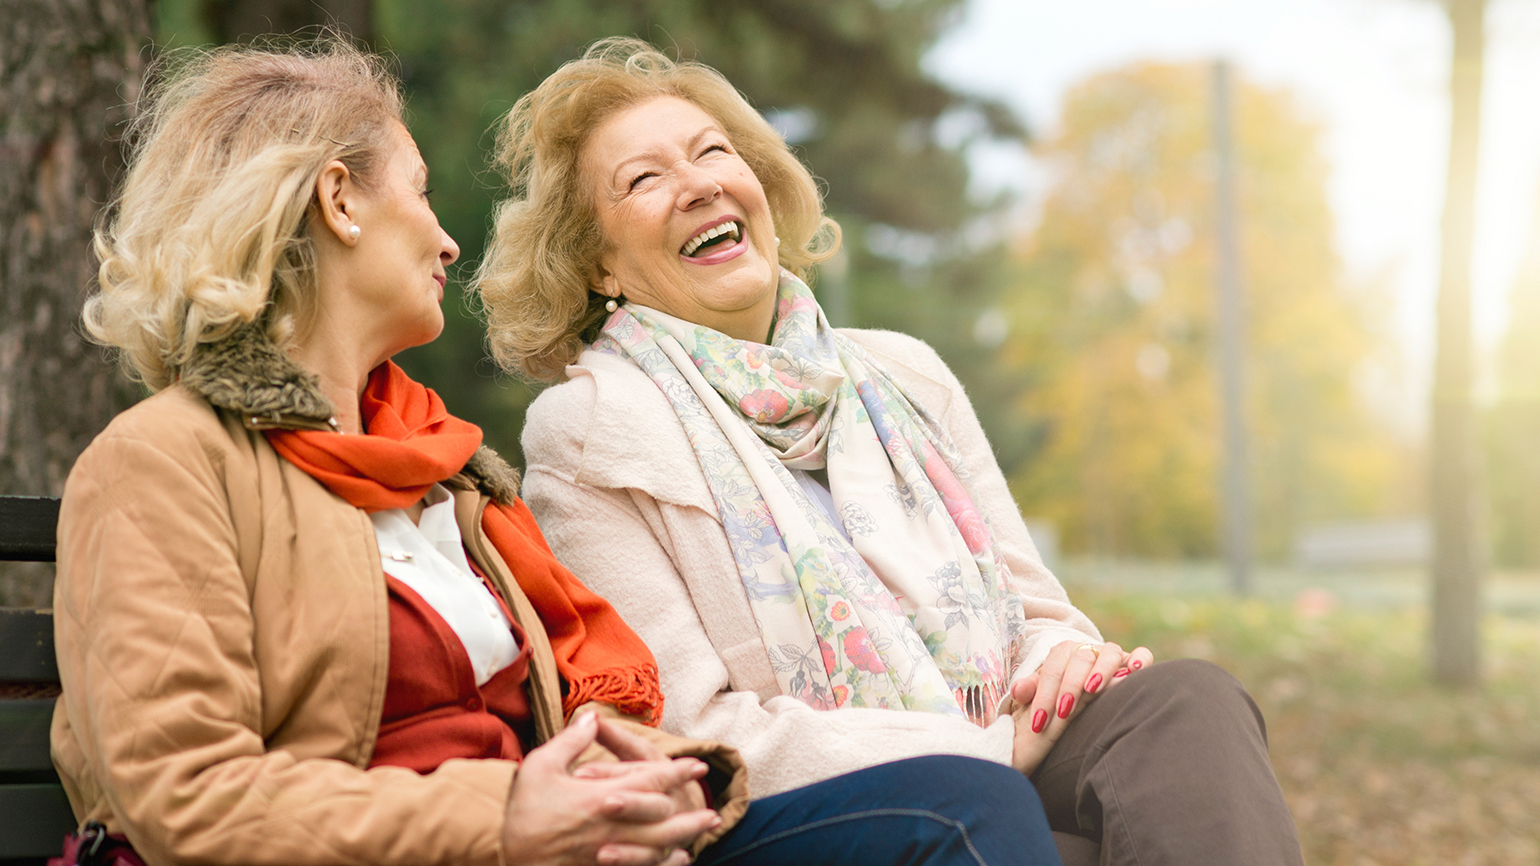 Two senior women enjoy a laugh together